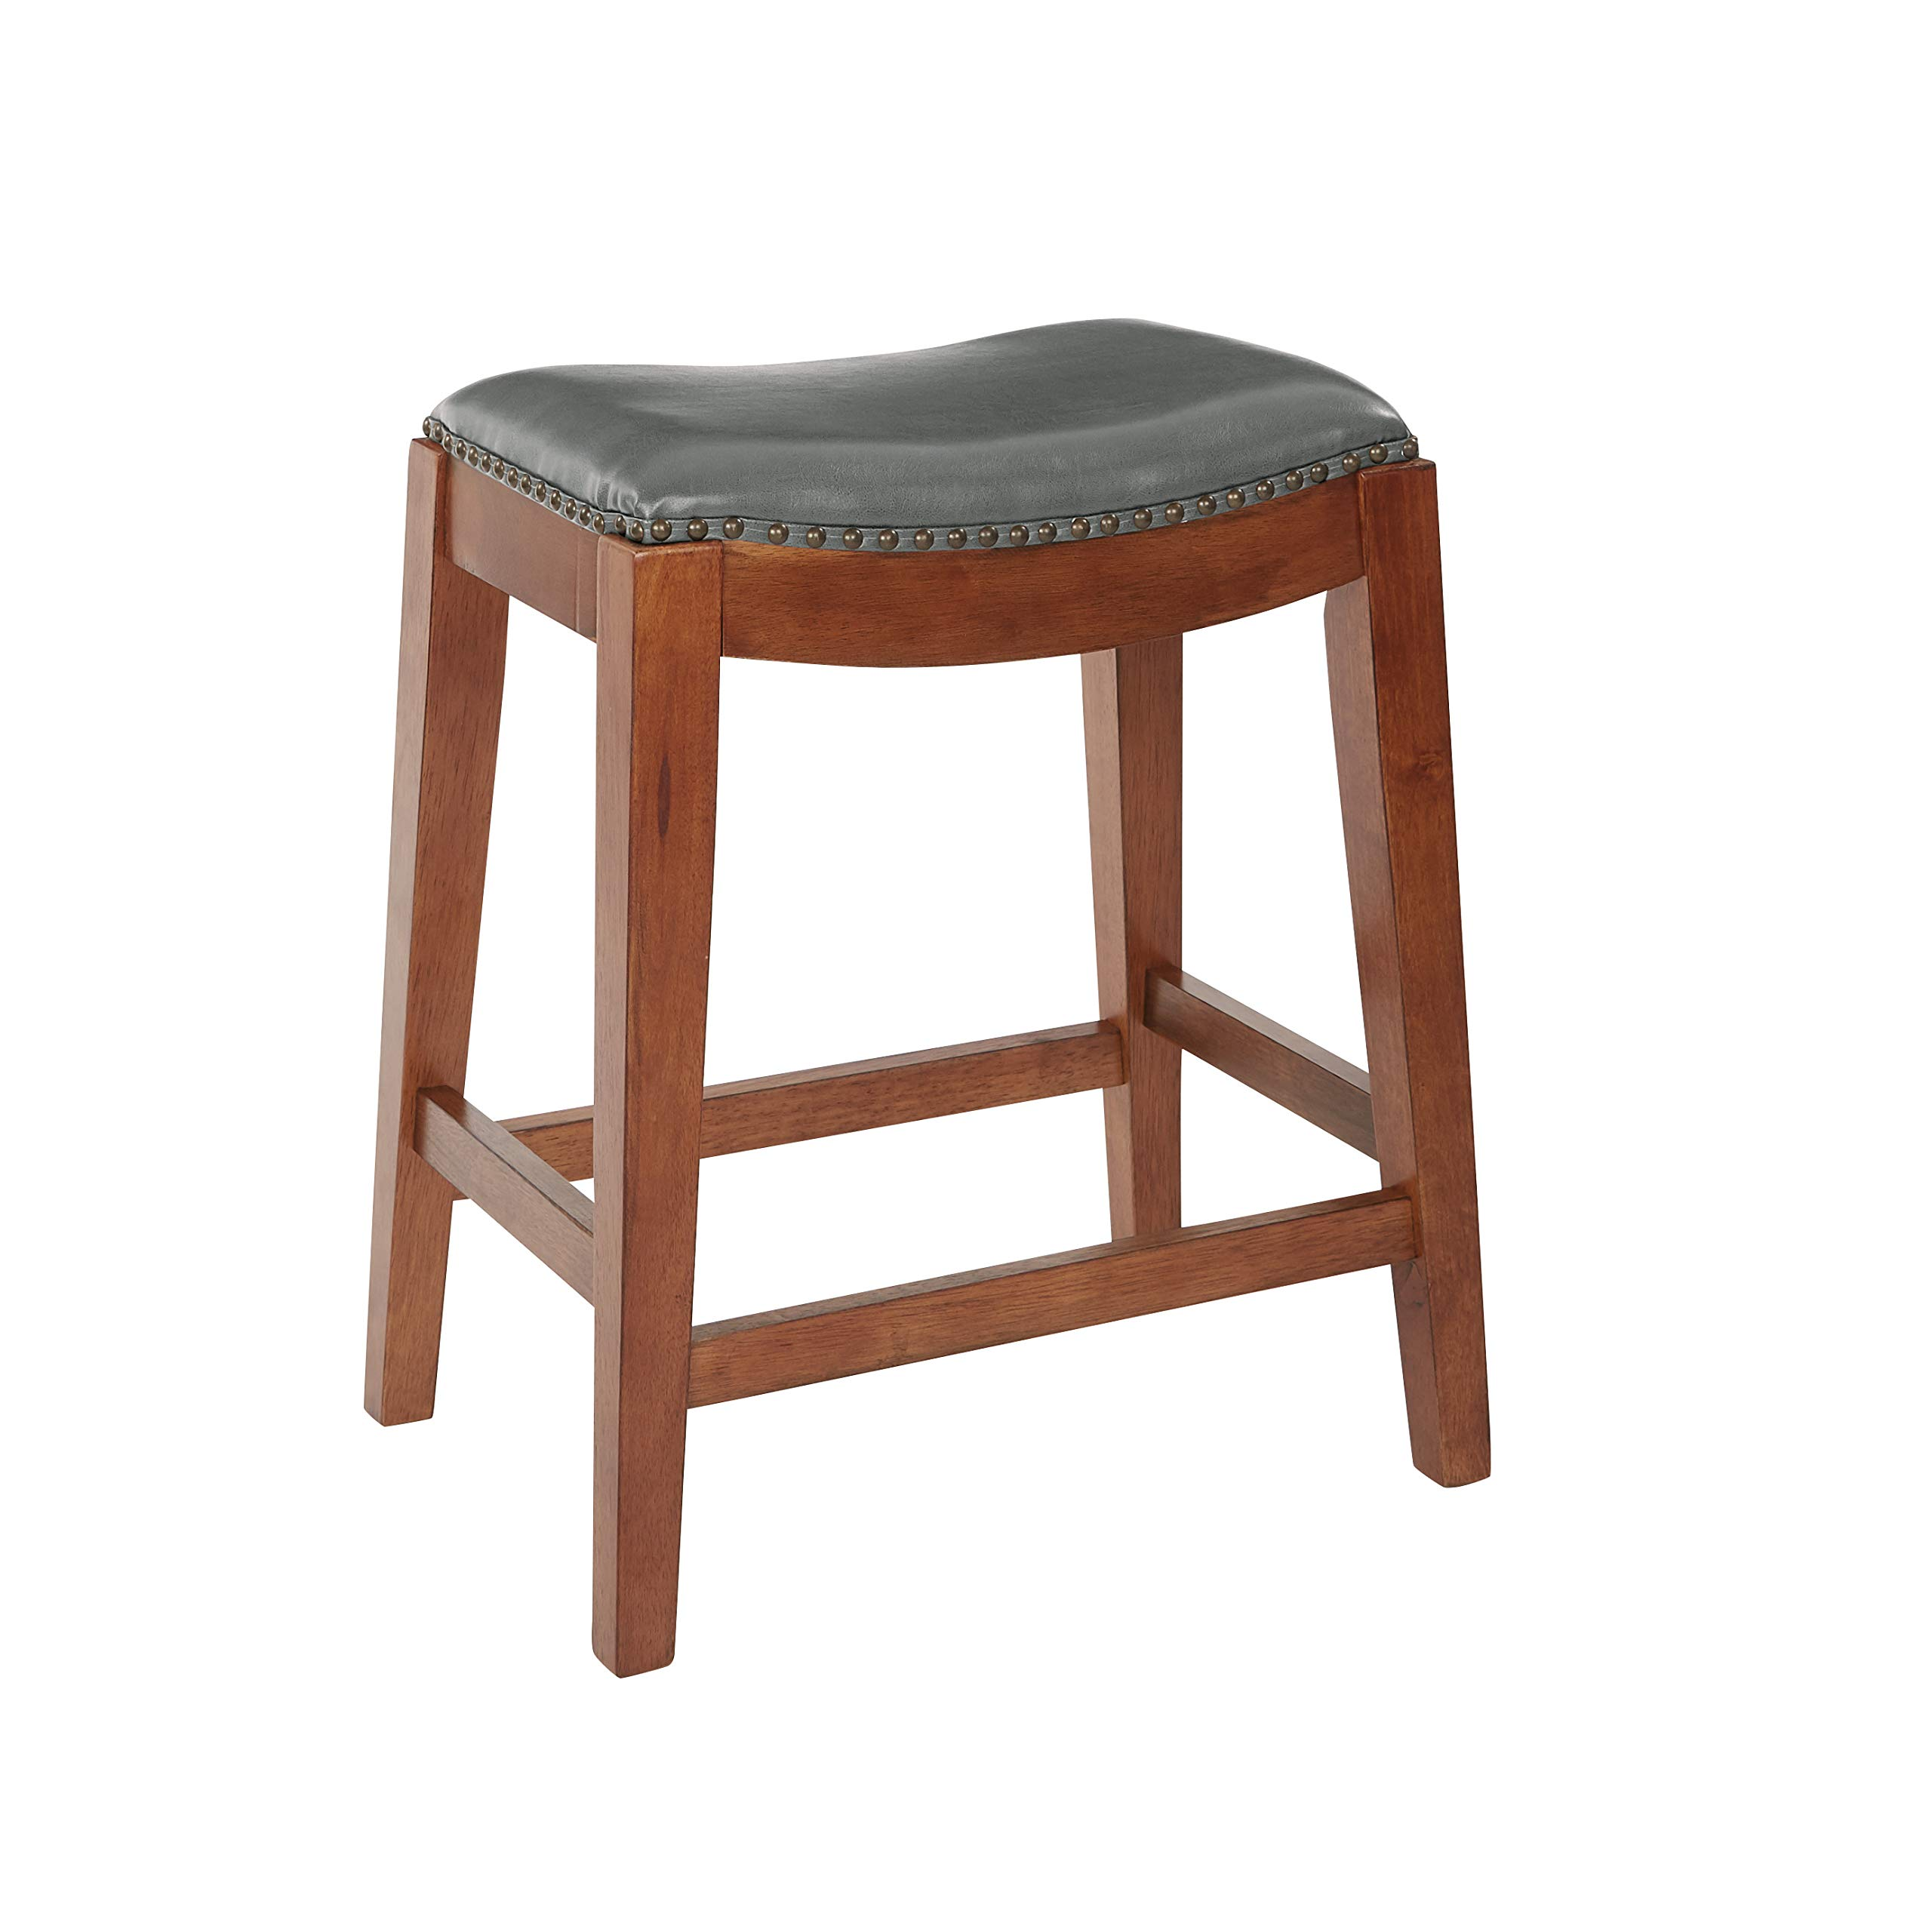 Office Star Metro Bonded Leather Counter-Height Saddle Stool with Nail Head Accents and Espresso Finished Legs, 24-Inch, Pewter